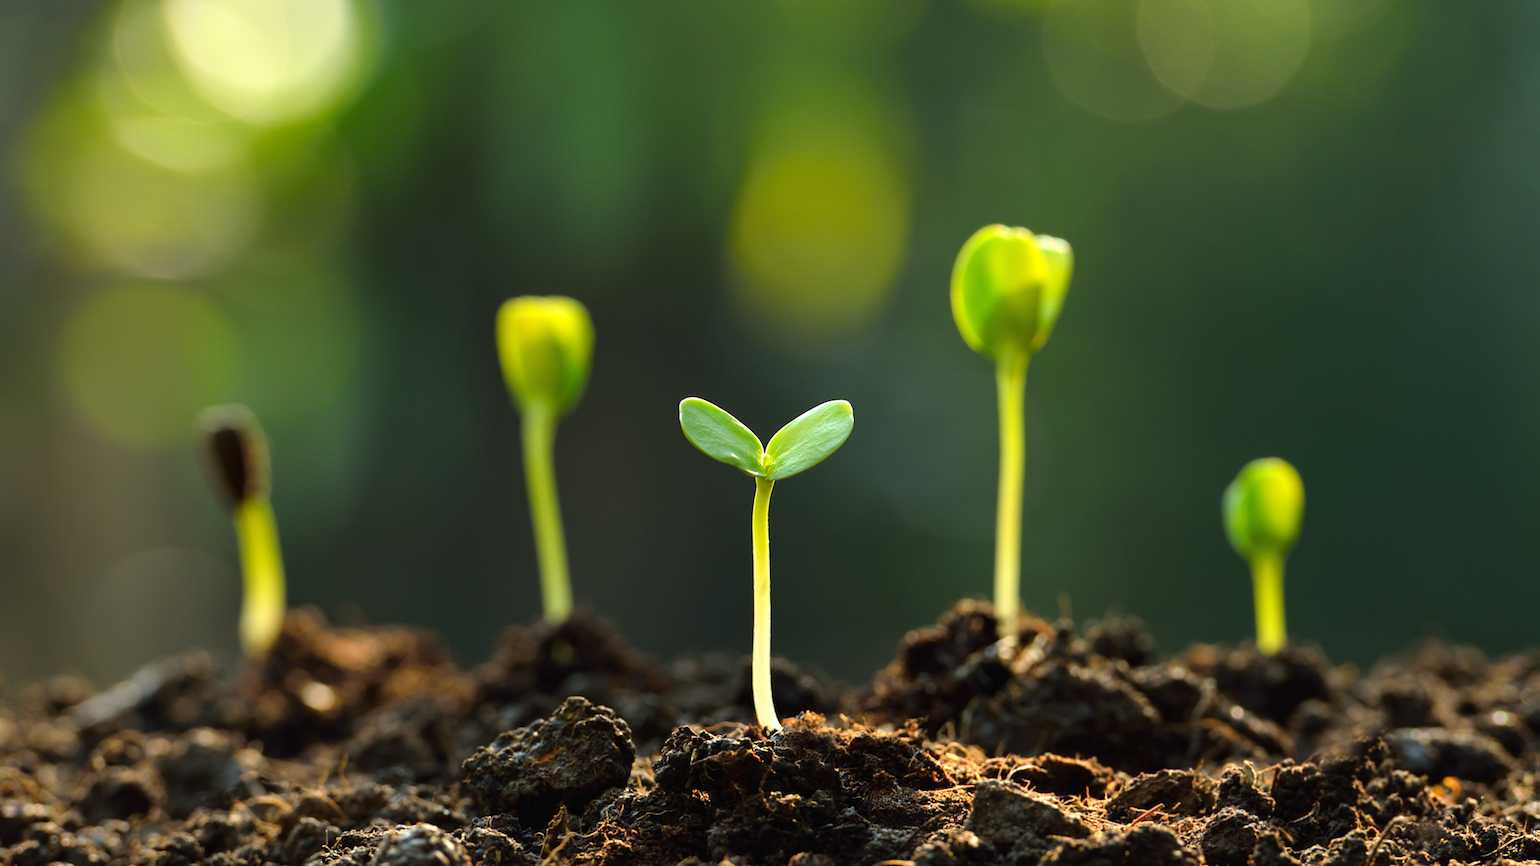 Plant prayers while you plant seeds.